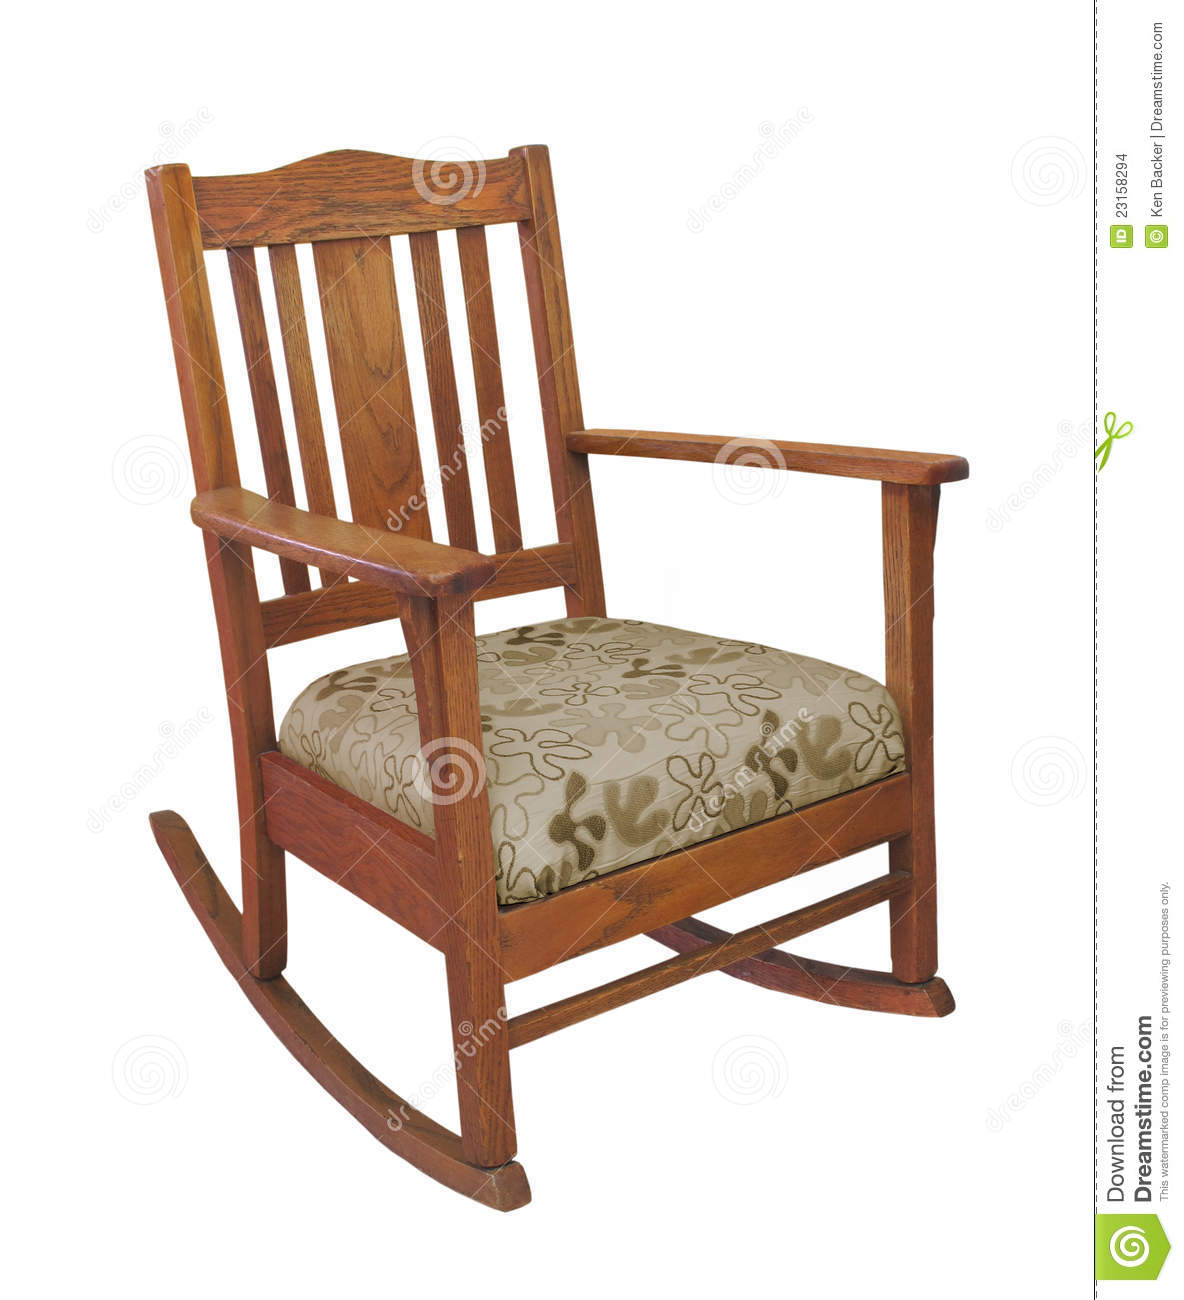 Antique Wooden Rocking Chair Isolated Stock Photo Image